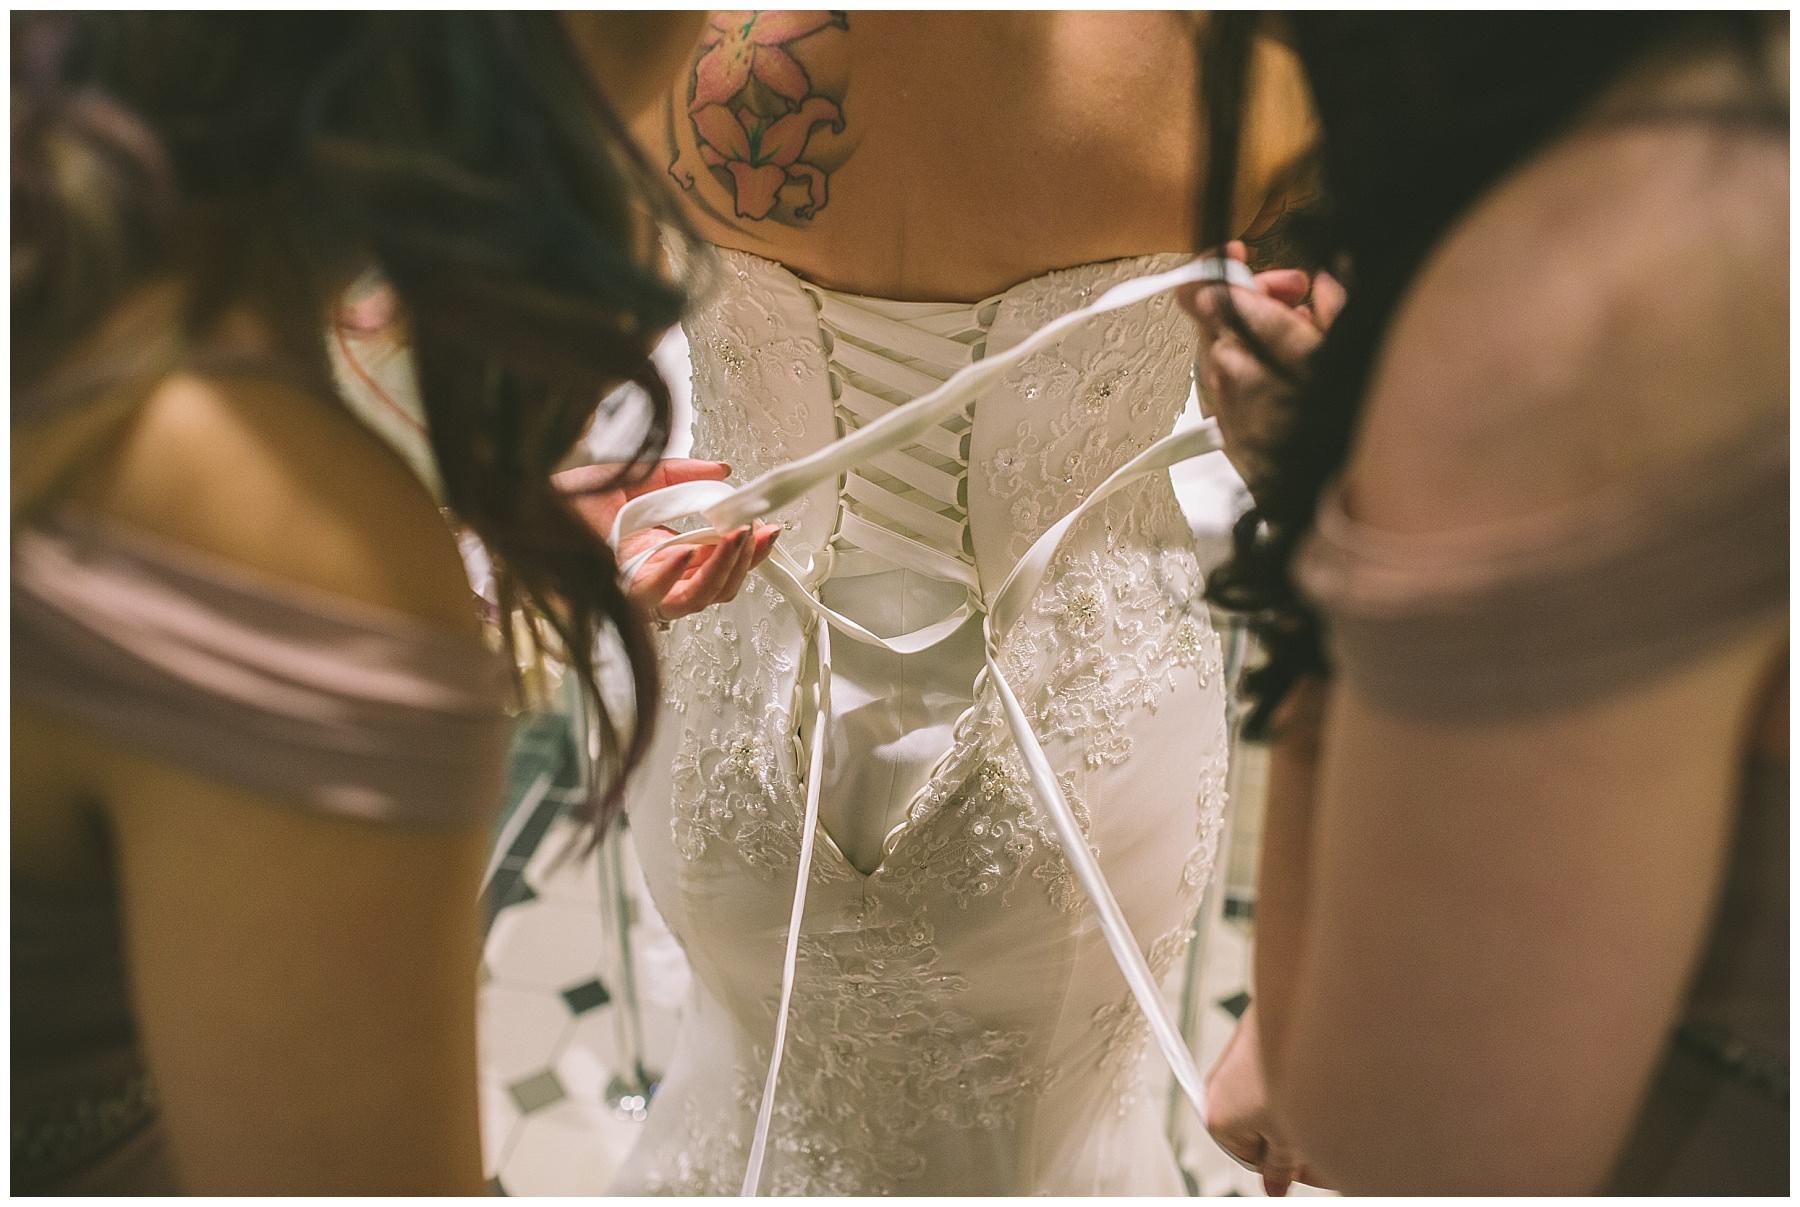 wedding dress being laced up by bridesmaids